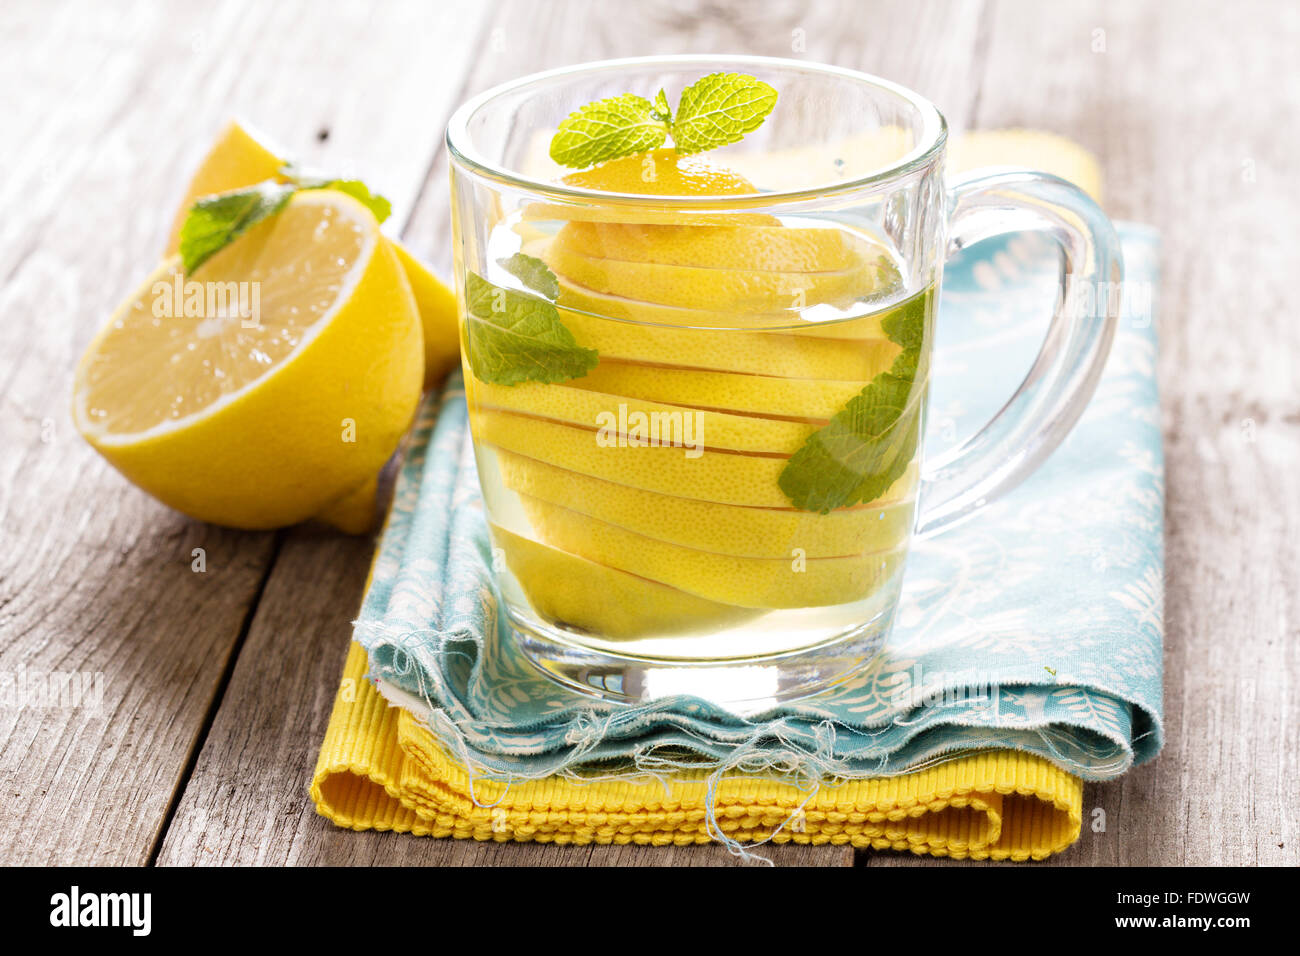 Tea with mint and whole lemon in a transparent cup. Natural medicine concept. - Stock Image